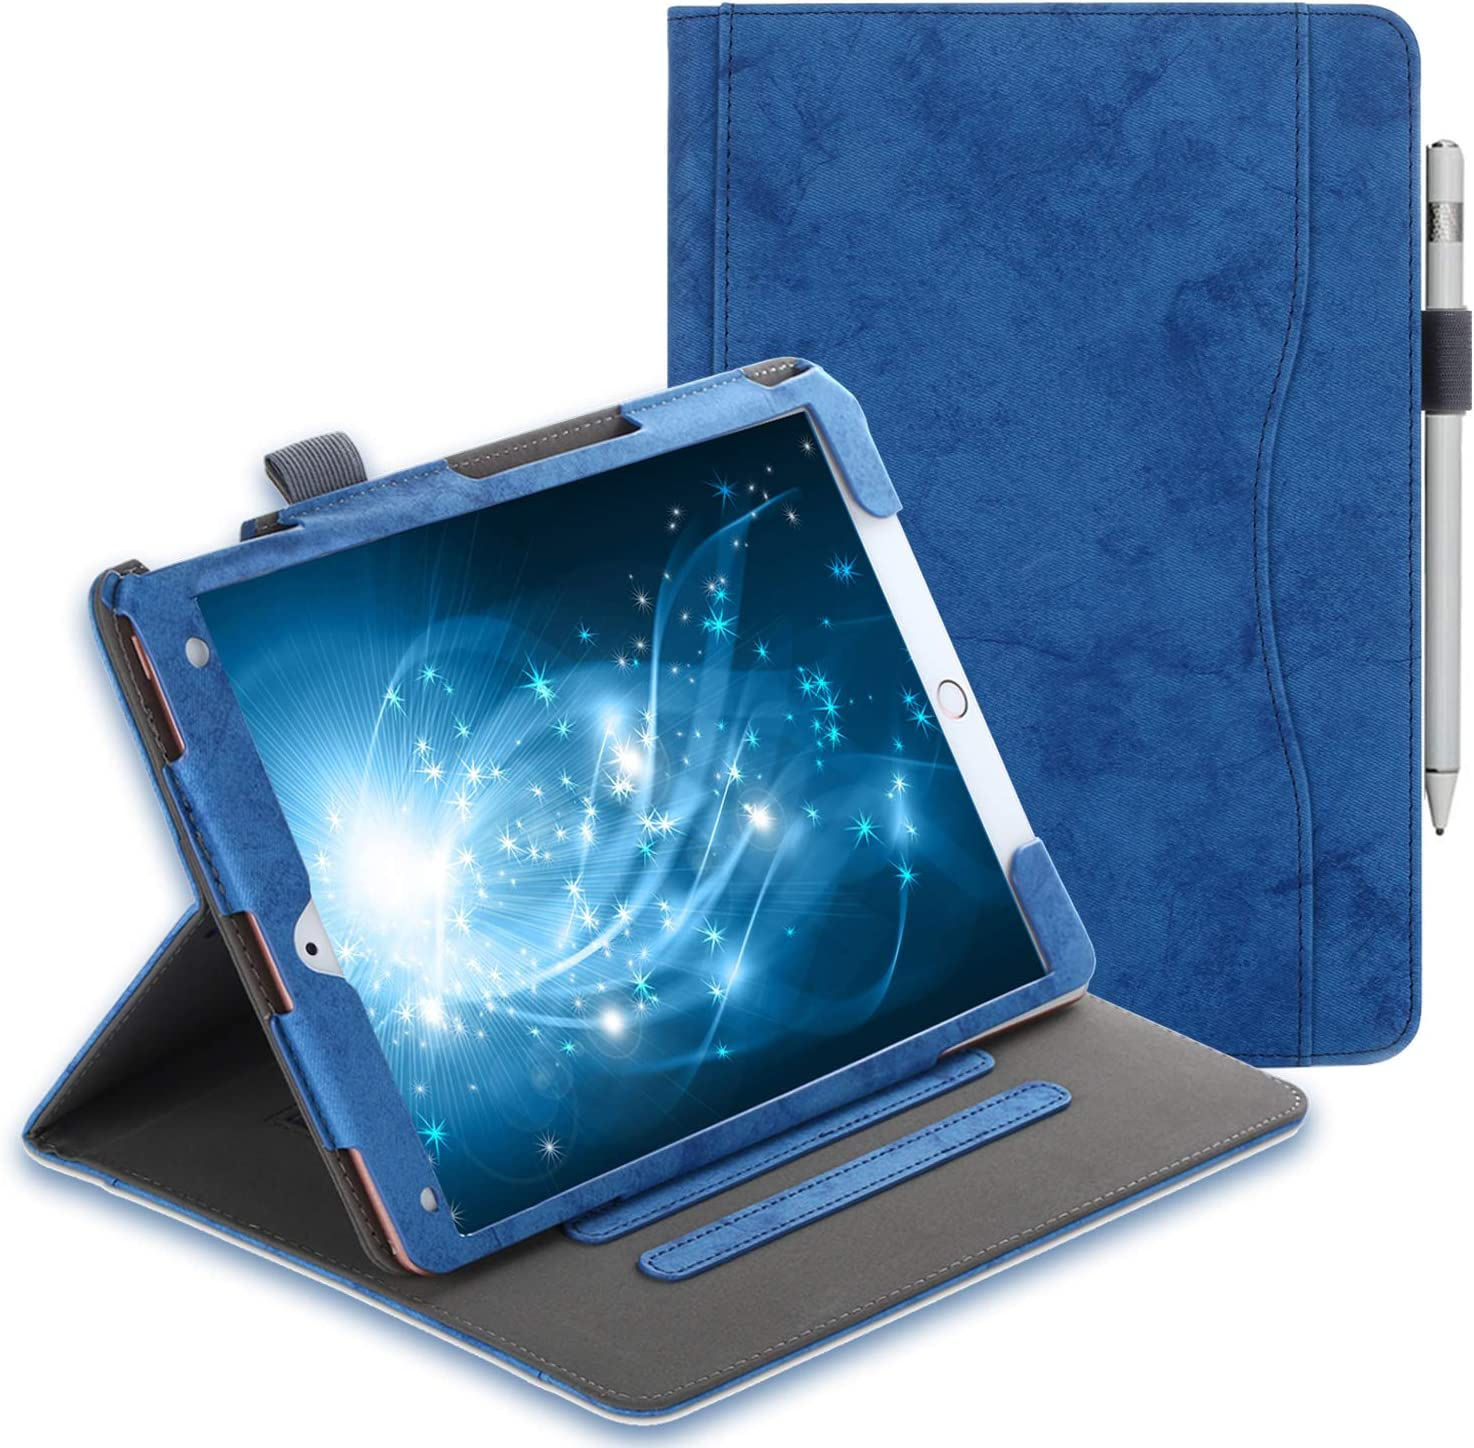 Wineecy Case service for iPad 10.2 Max 63% OFF Cas Generation 7th 2019